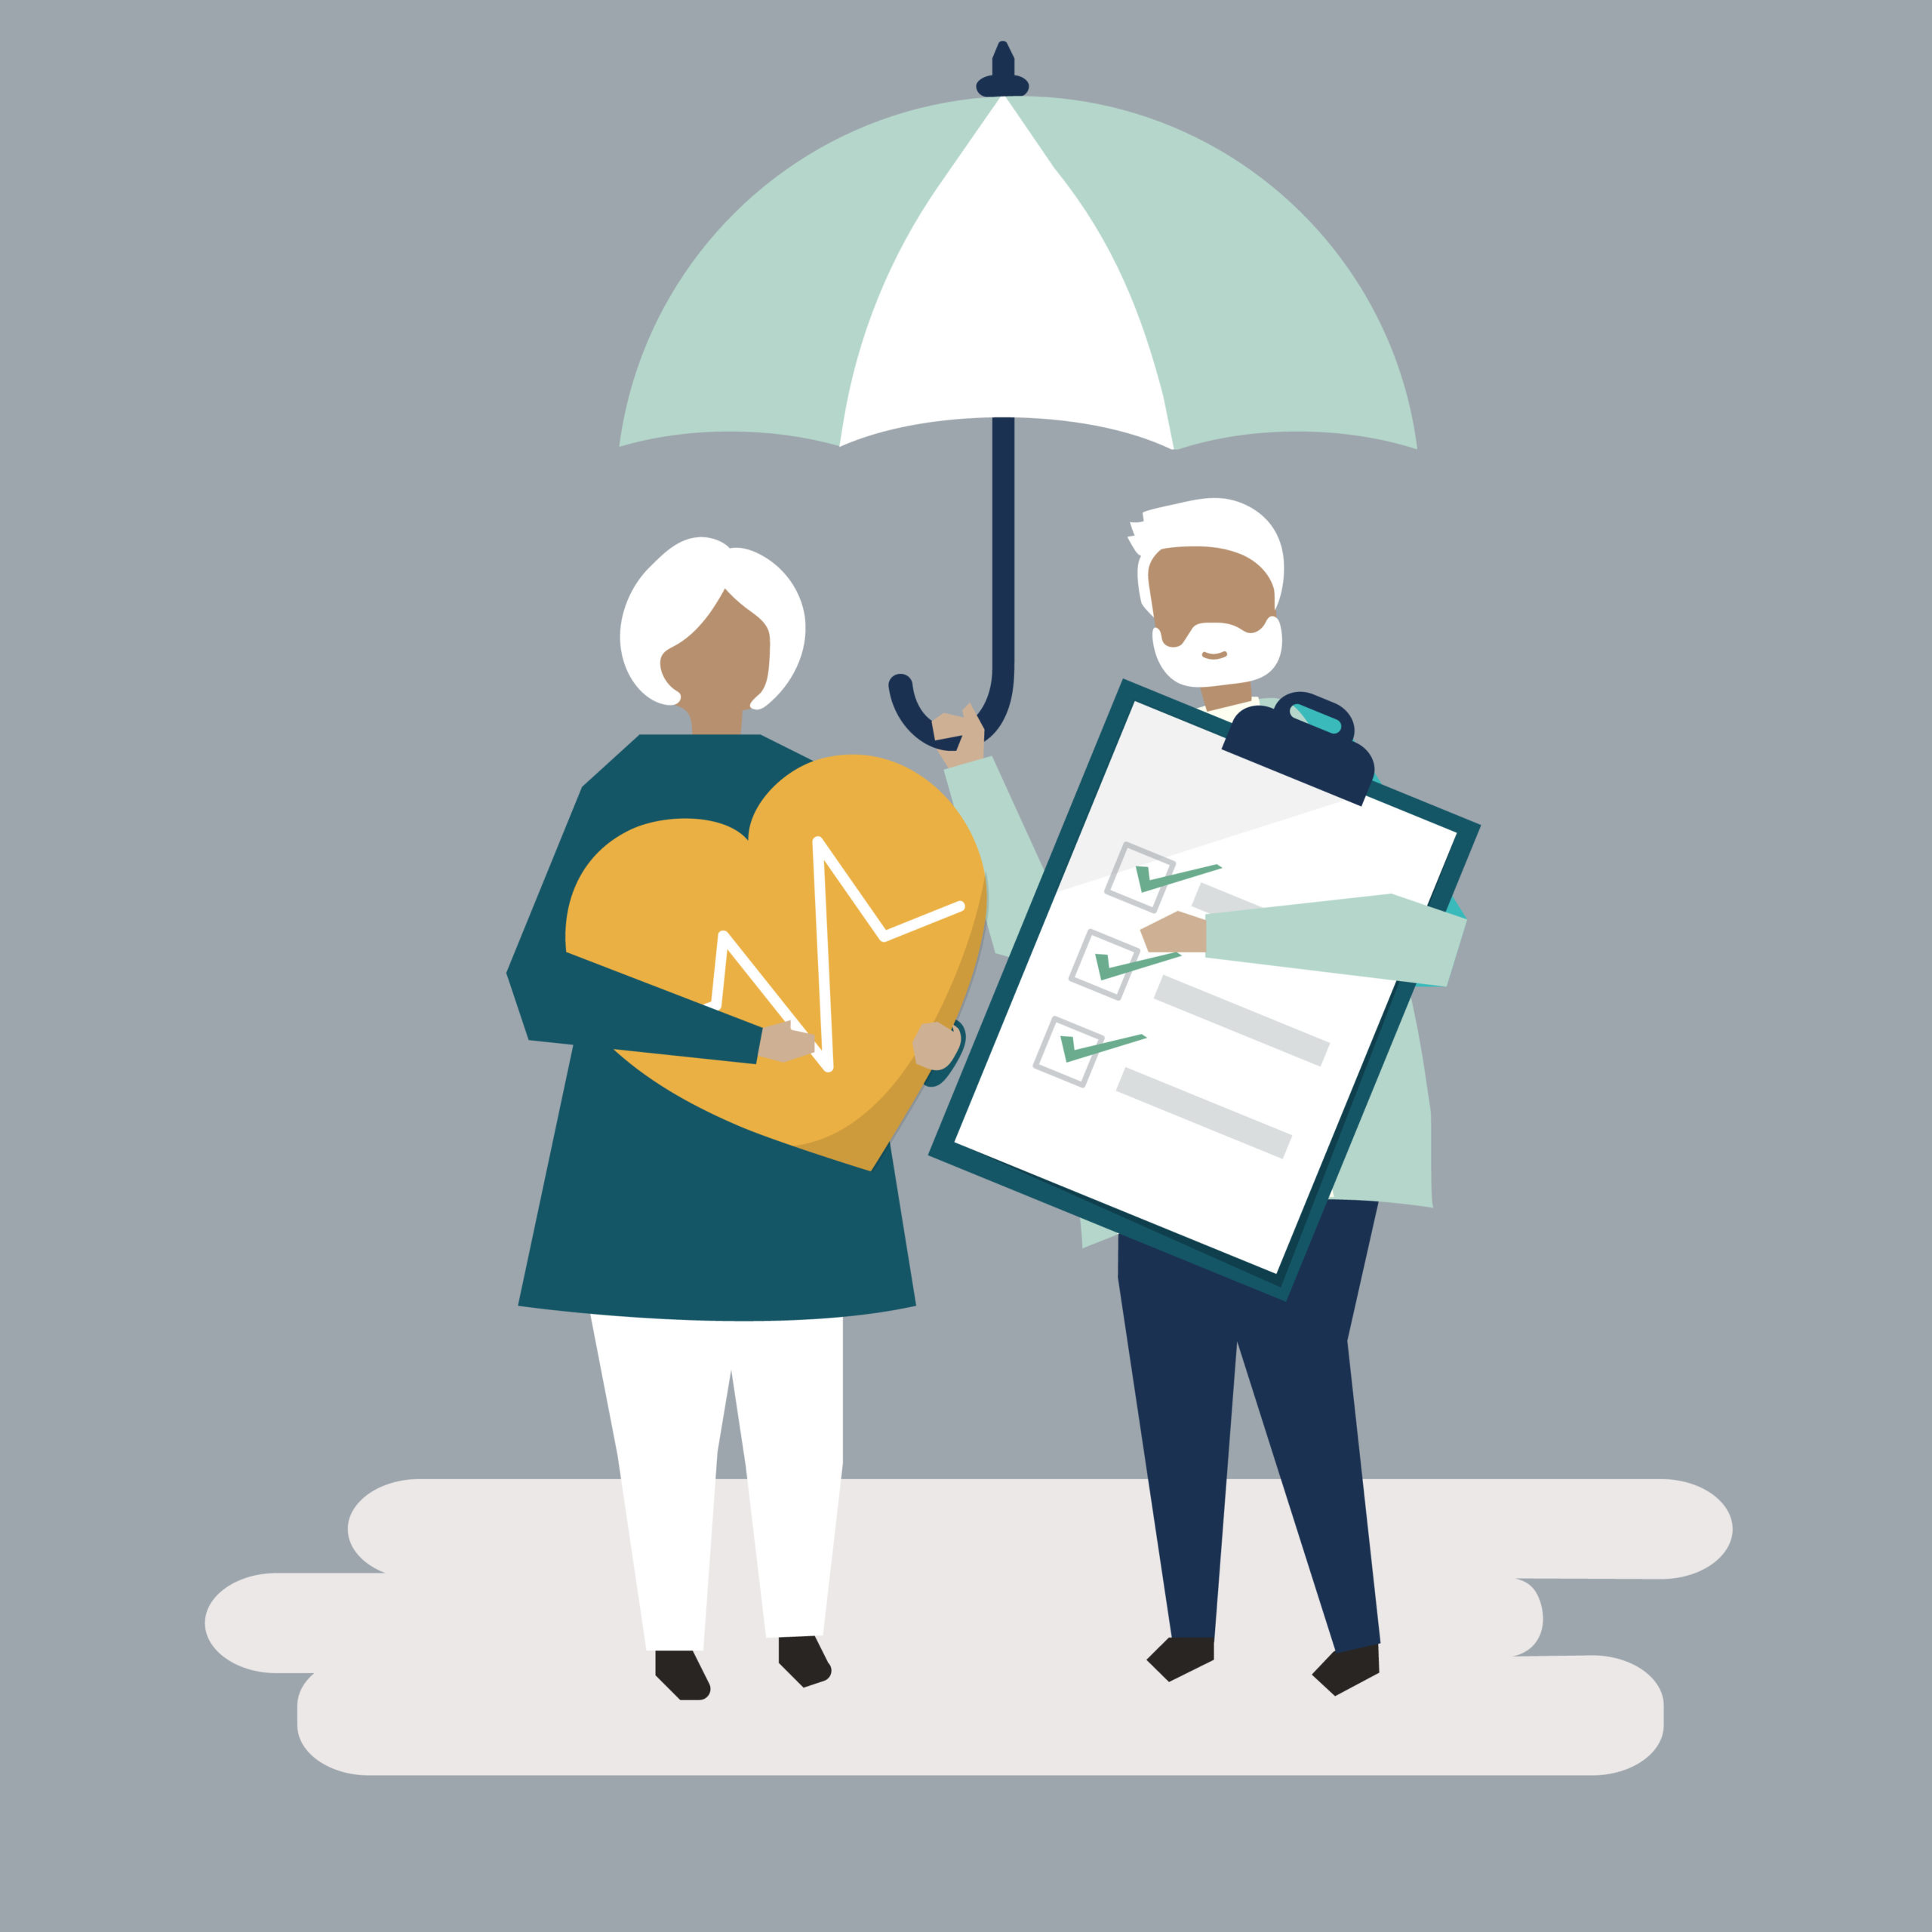 Two cartoon seniors stand under an umbrella, one holding large cut-out heart and the other a chart